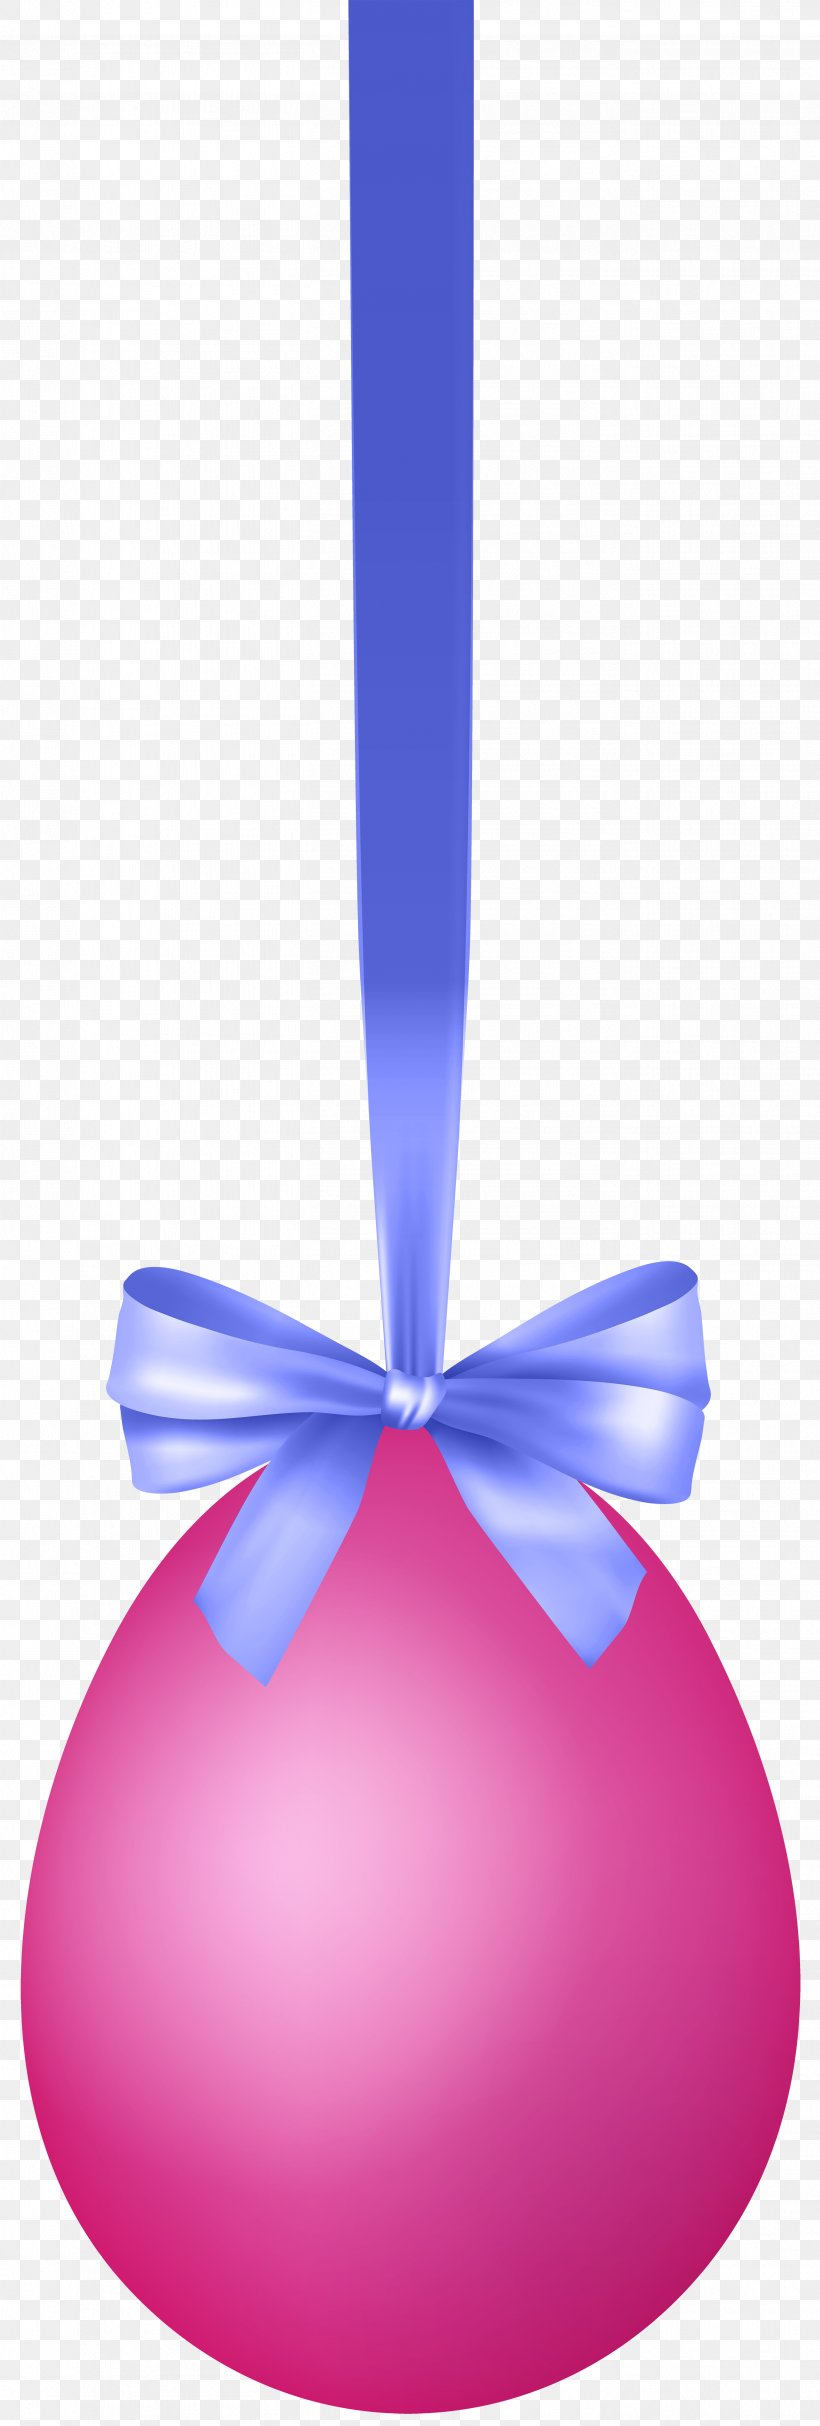 Red Easter Egg Clip Art, PNG, 2703x8000px, Red Easter Egg, Birthday Cake, Blog, Blue, Easter Download Free